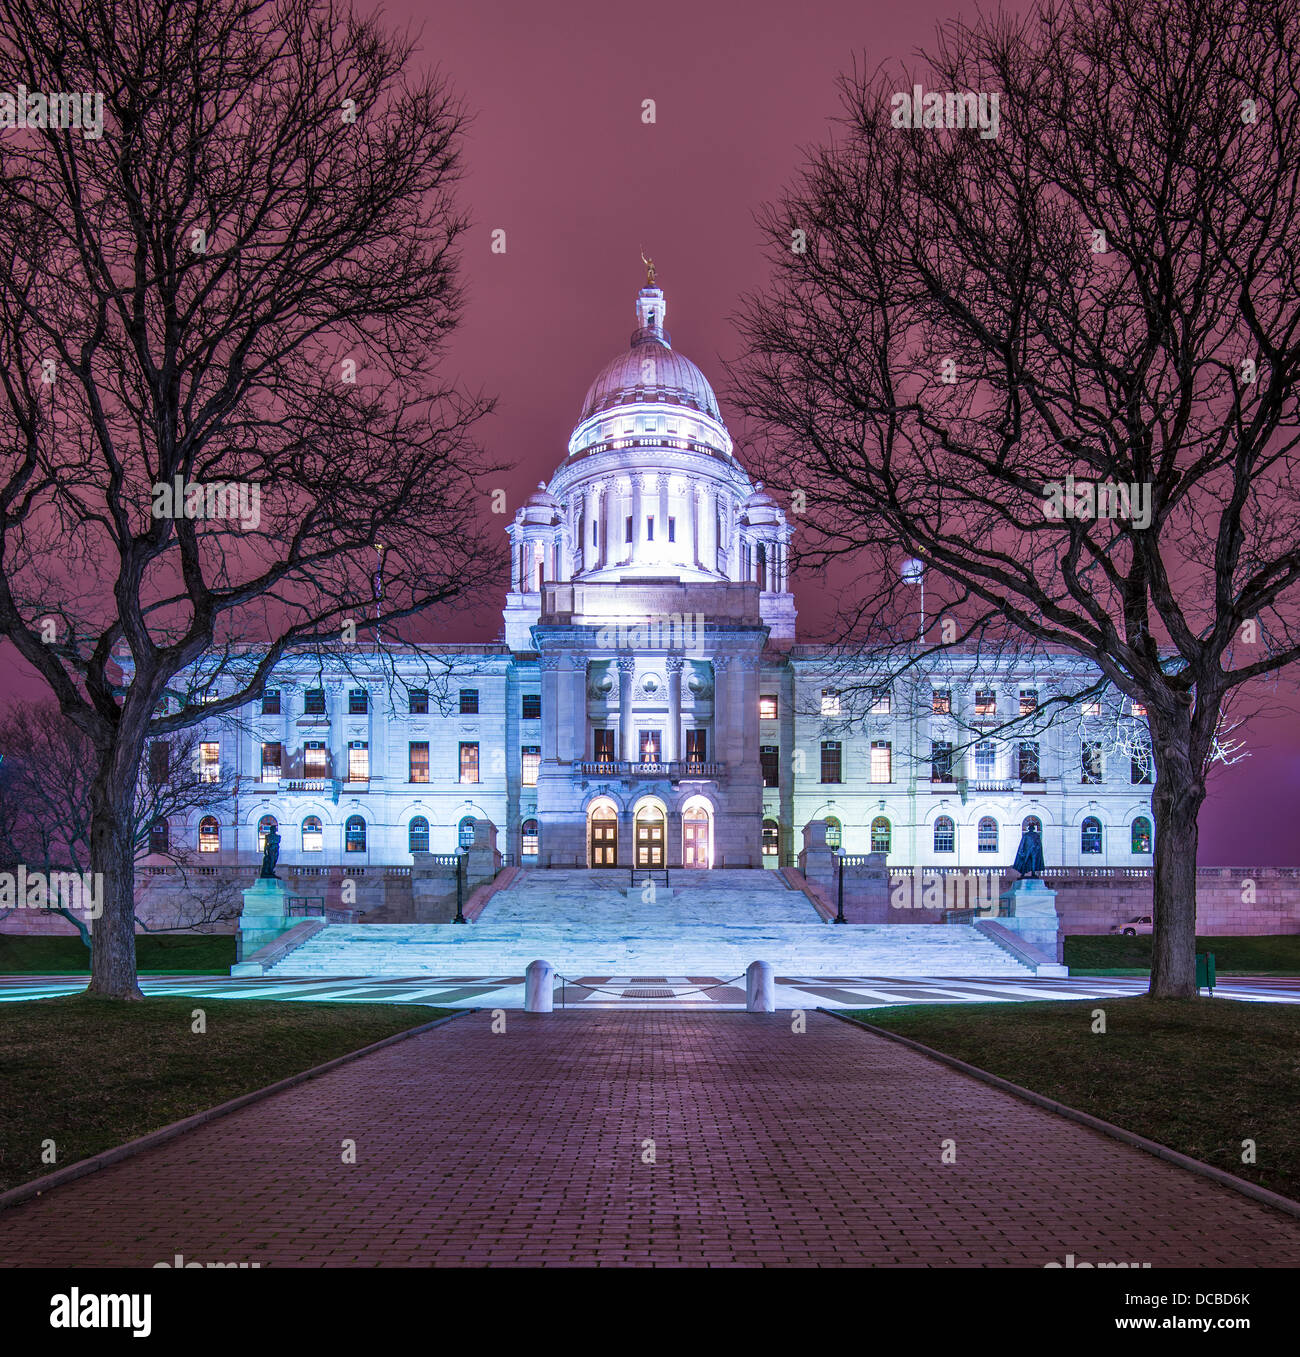 Rhode Island State House in Providence, Rhode Island, USA illuminated at night. - Stock Image